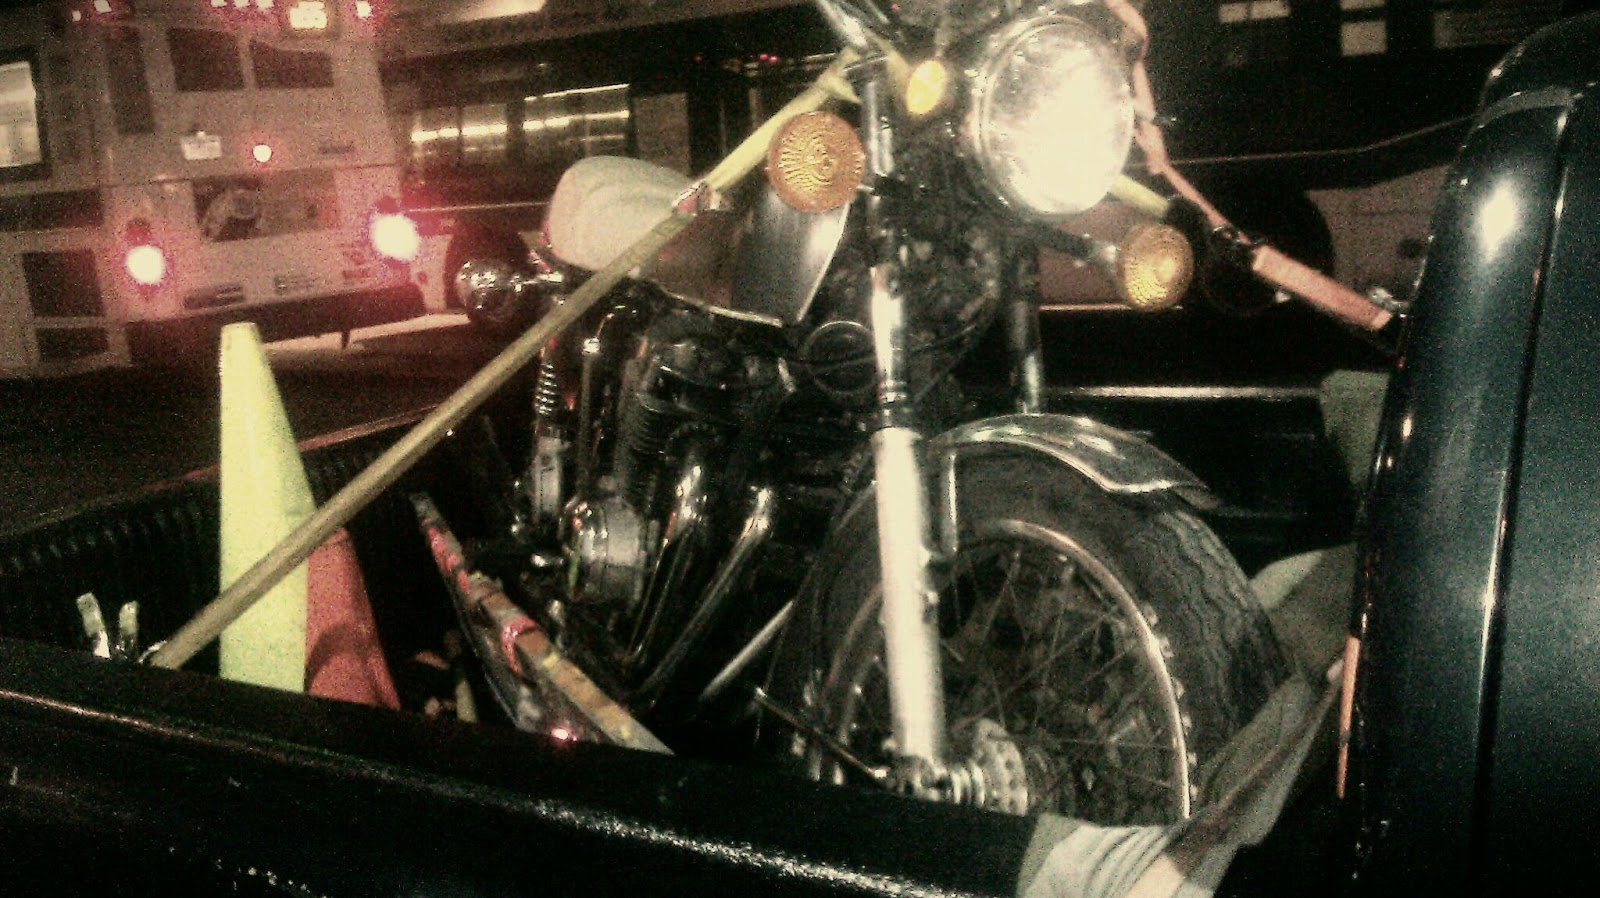 Andrews Motorcycle Help Towing Bike Transport NYC And Repairs 212 845 9567